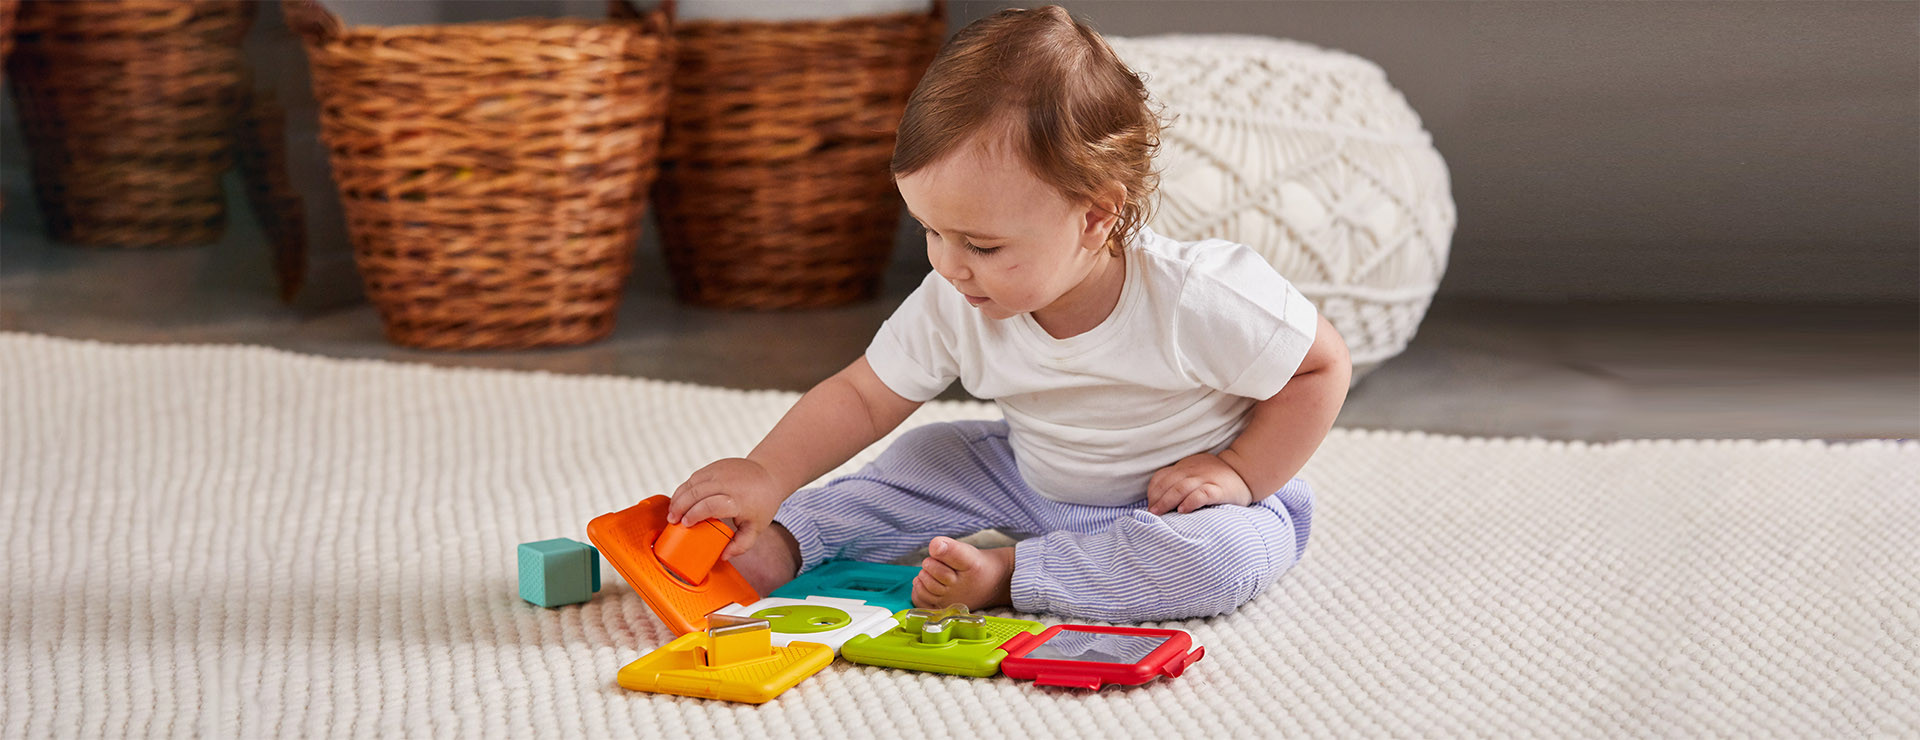 Puzzle with rotating peek-a-boo circle stimulates baby further exploration